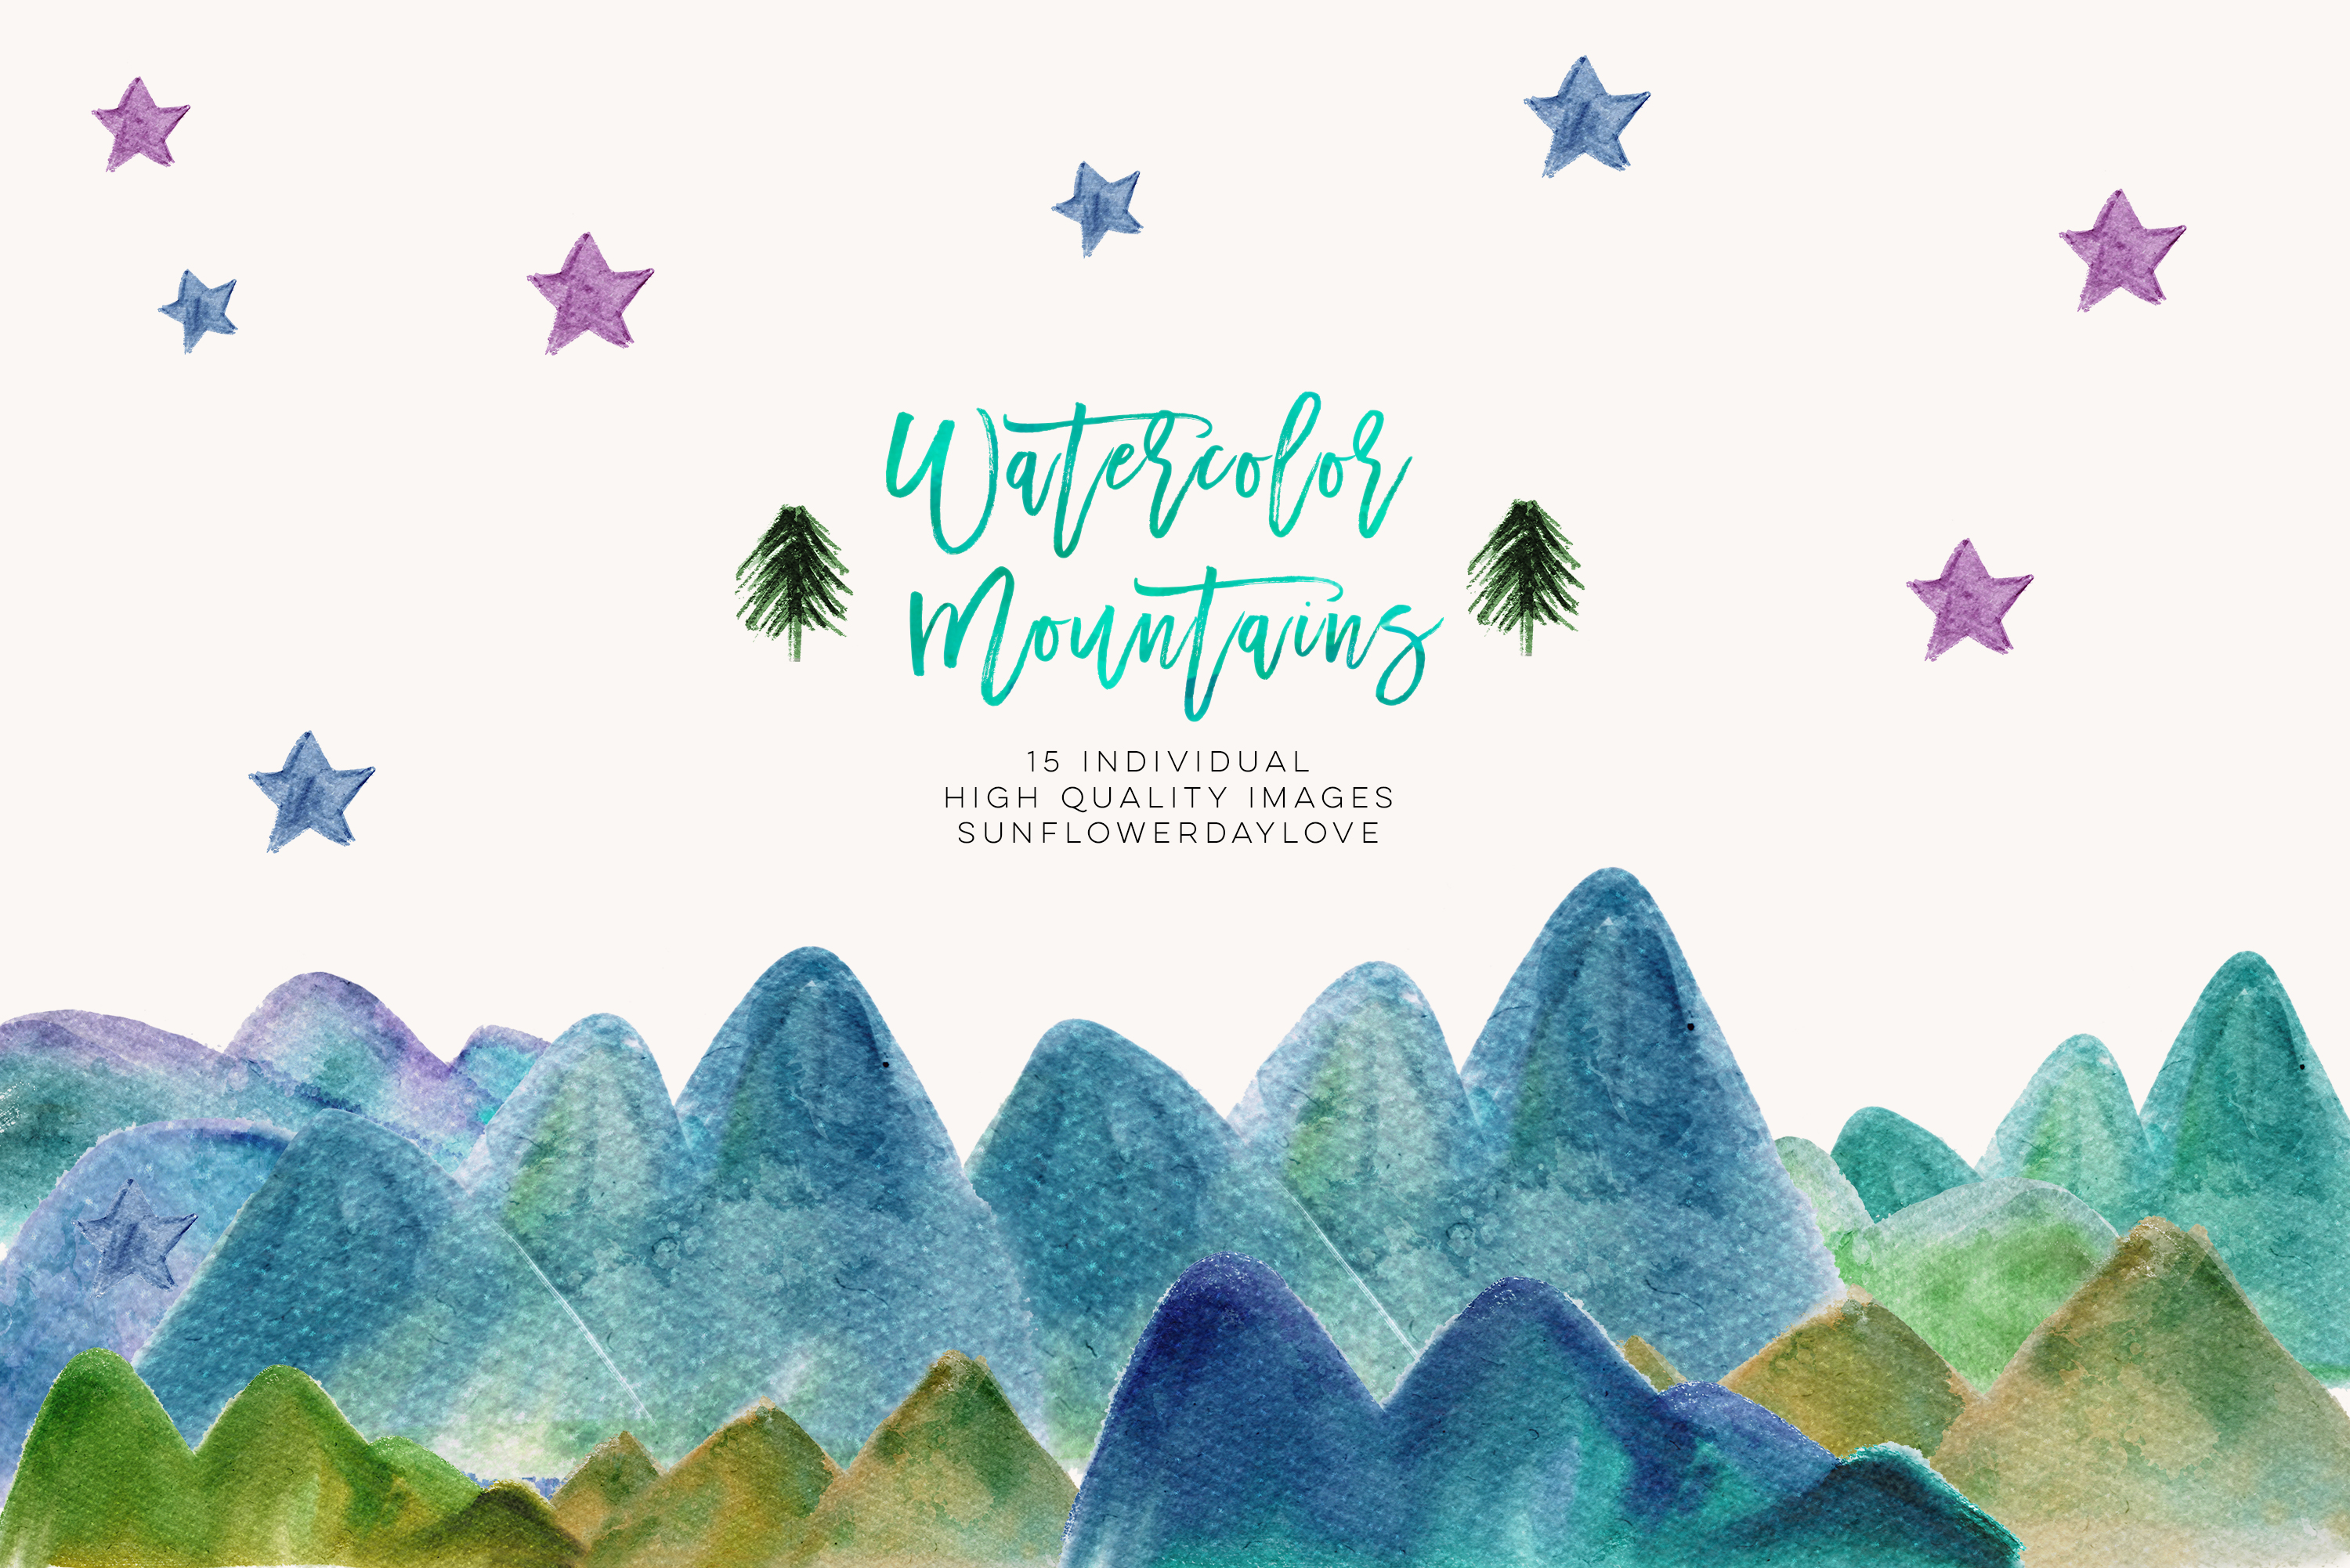 Clipart natural banner royalty free Watercolor Mountain Borders Clip Art, Mountain Forest Green clipart,  Watercolor Mountains Blue Green Clipart outdoor clipart, nature clipart -  Vsual banner royalty free